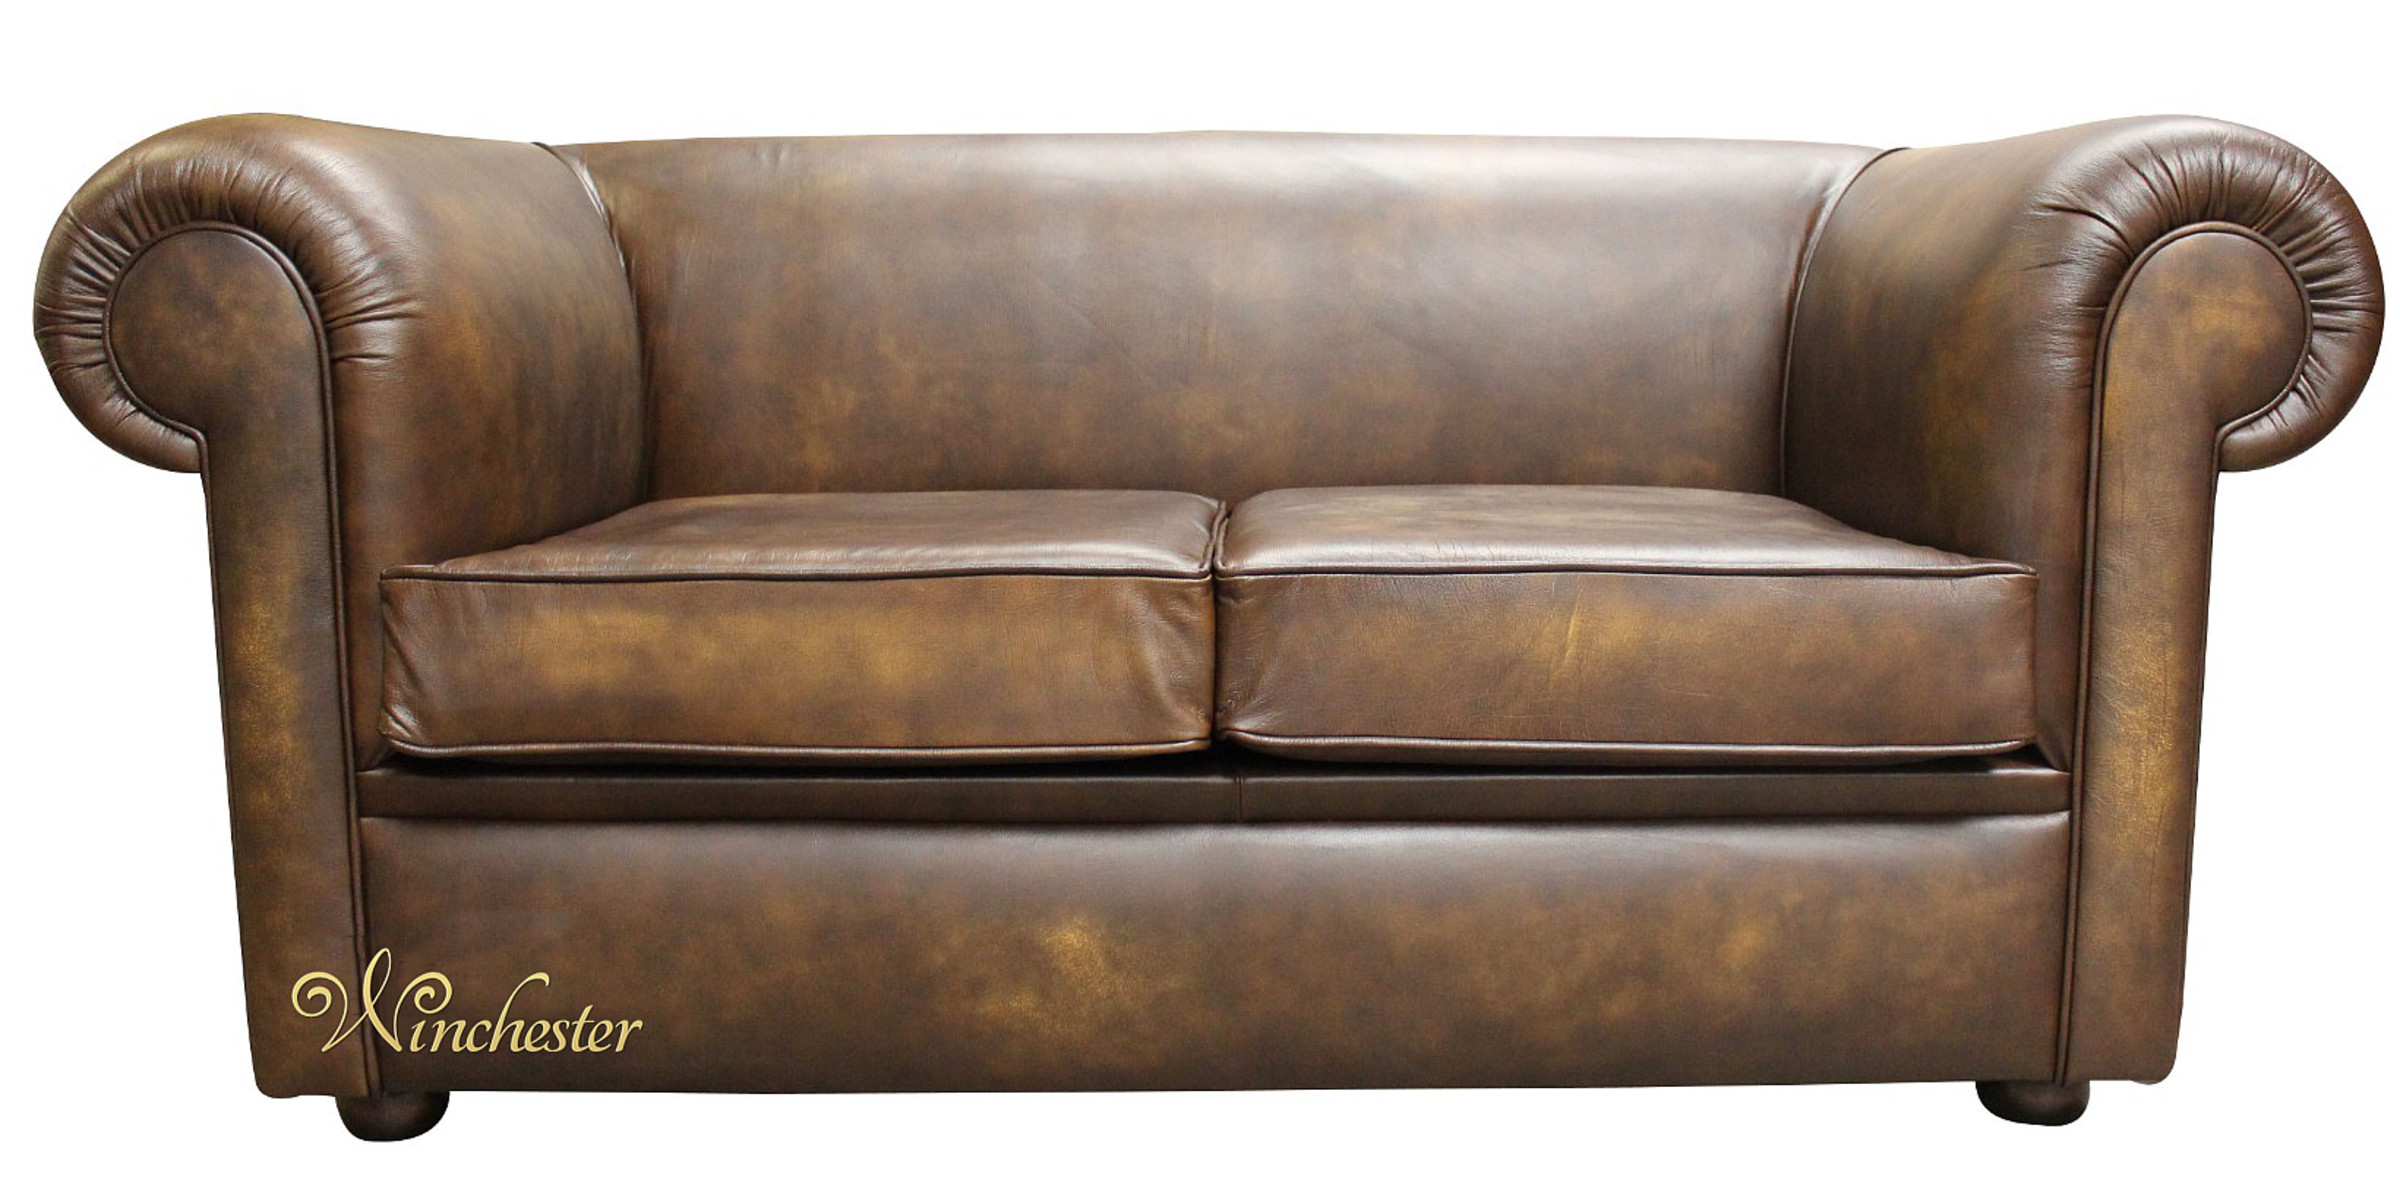 chesterfield 1930 39 s 2 seater sofa bed antique gold leather. Black Bedroom Furniture Sets. Home Design Ideas